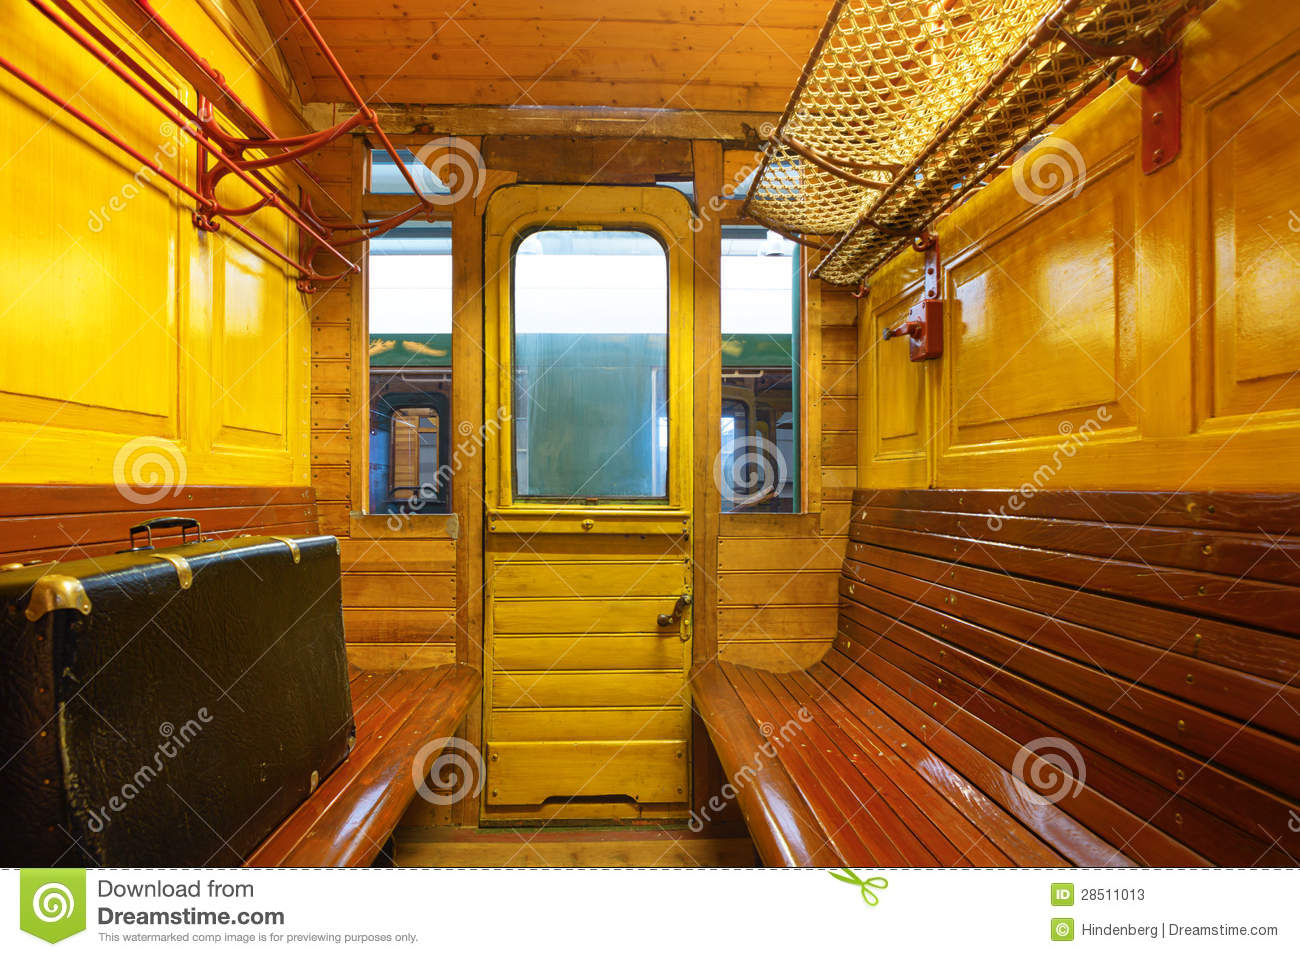 Rovos train compartment, South Africa